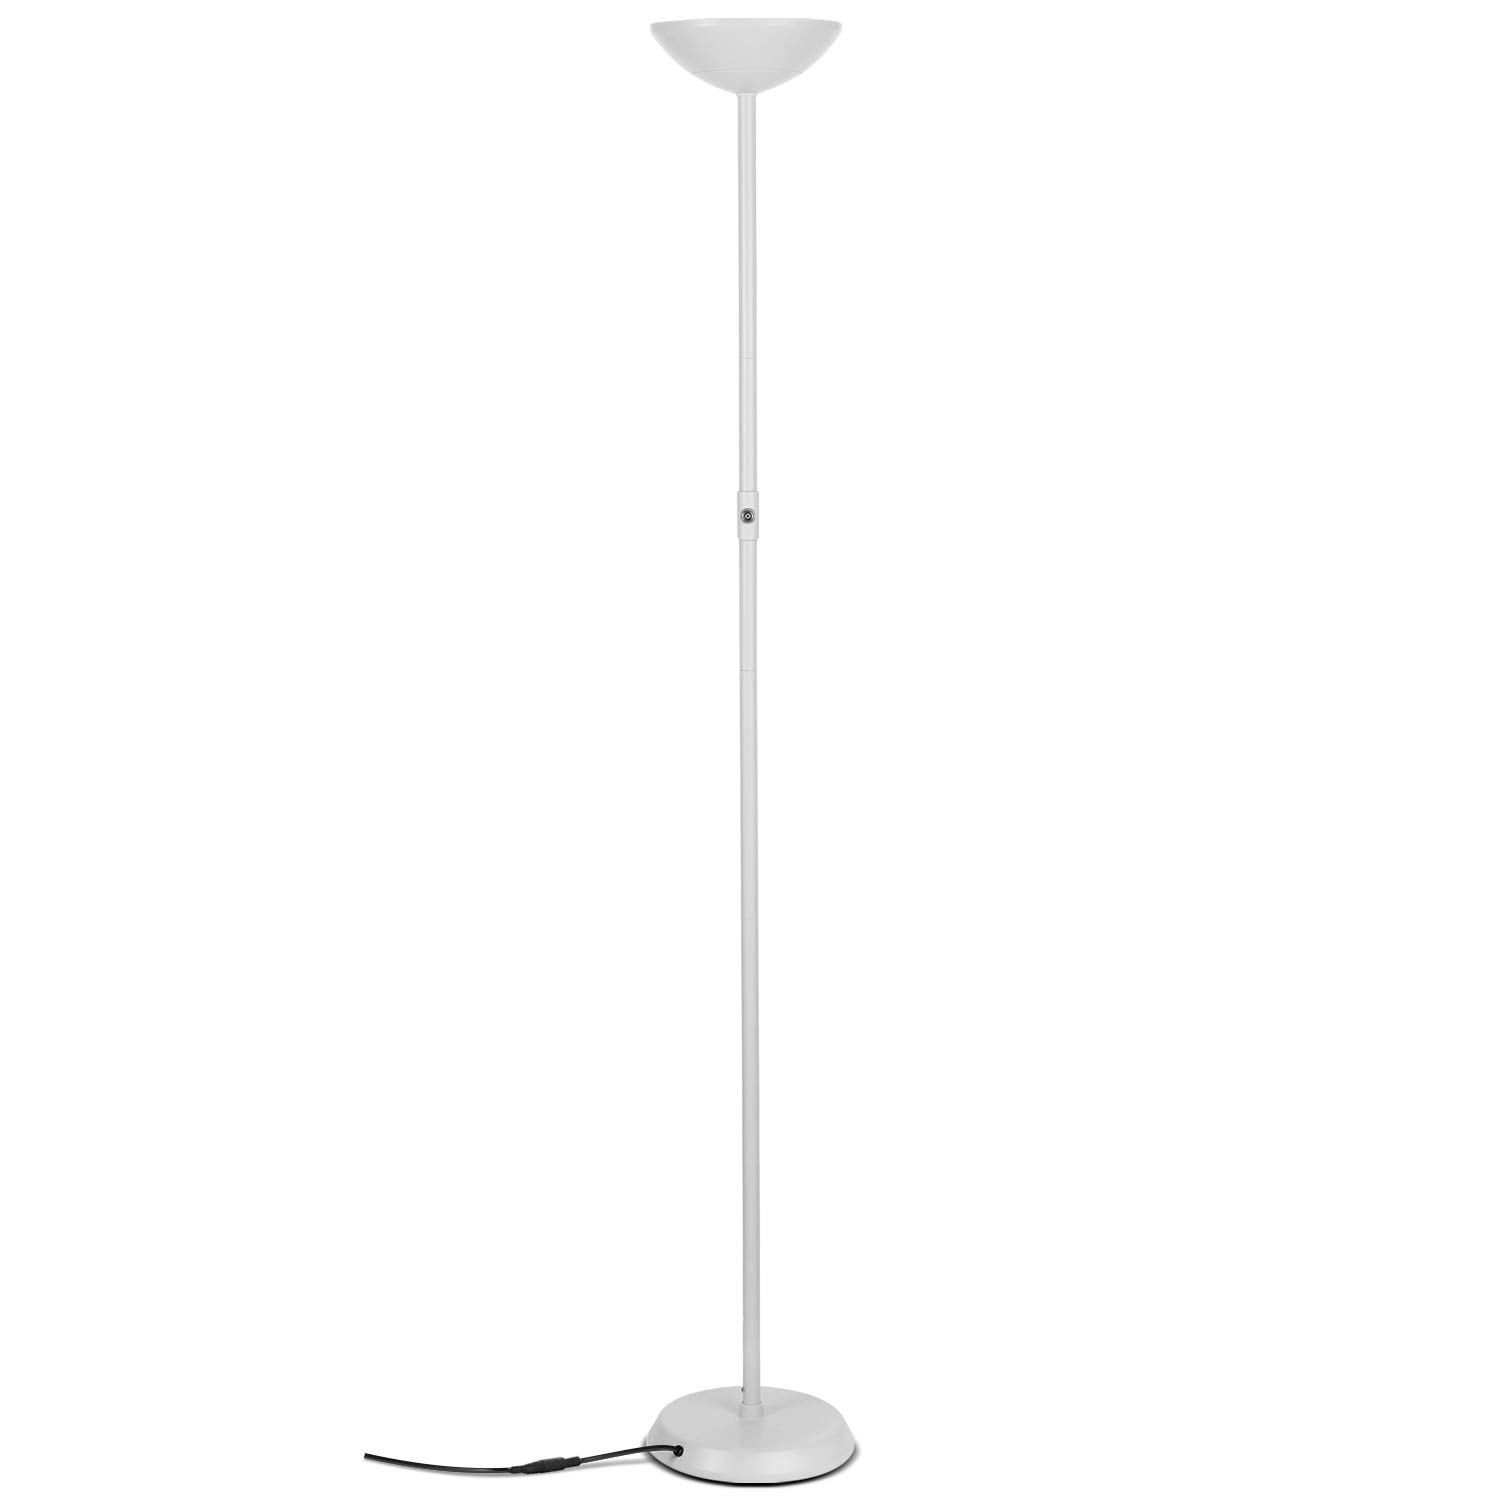 Brightech SkyLite - Bright LED Torchiere Floor Lamp for Offices – Modern, Dimmable Reading Light for Living Rooms & Bedrooms - Tall Standing Pole Light - White